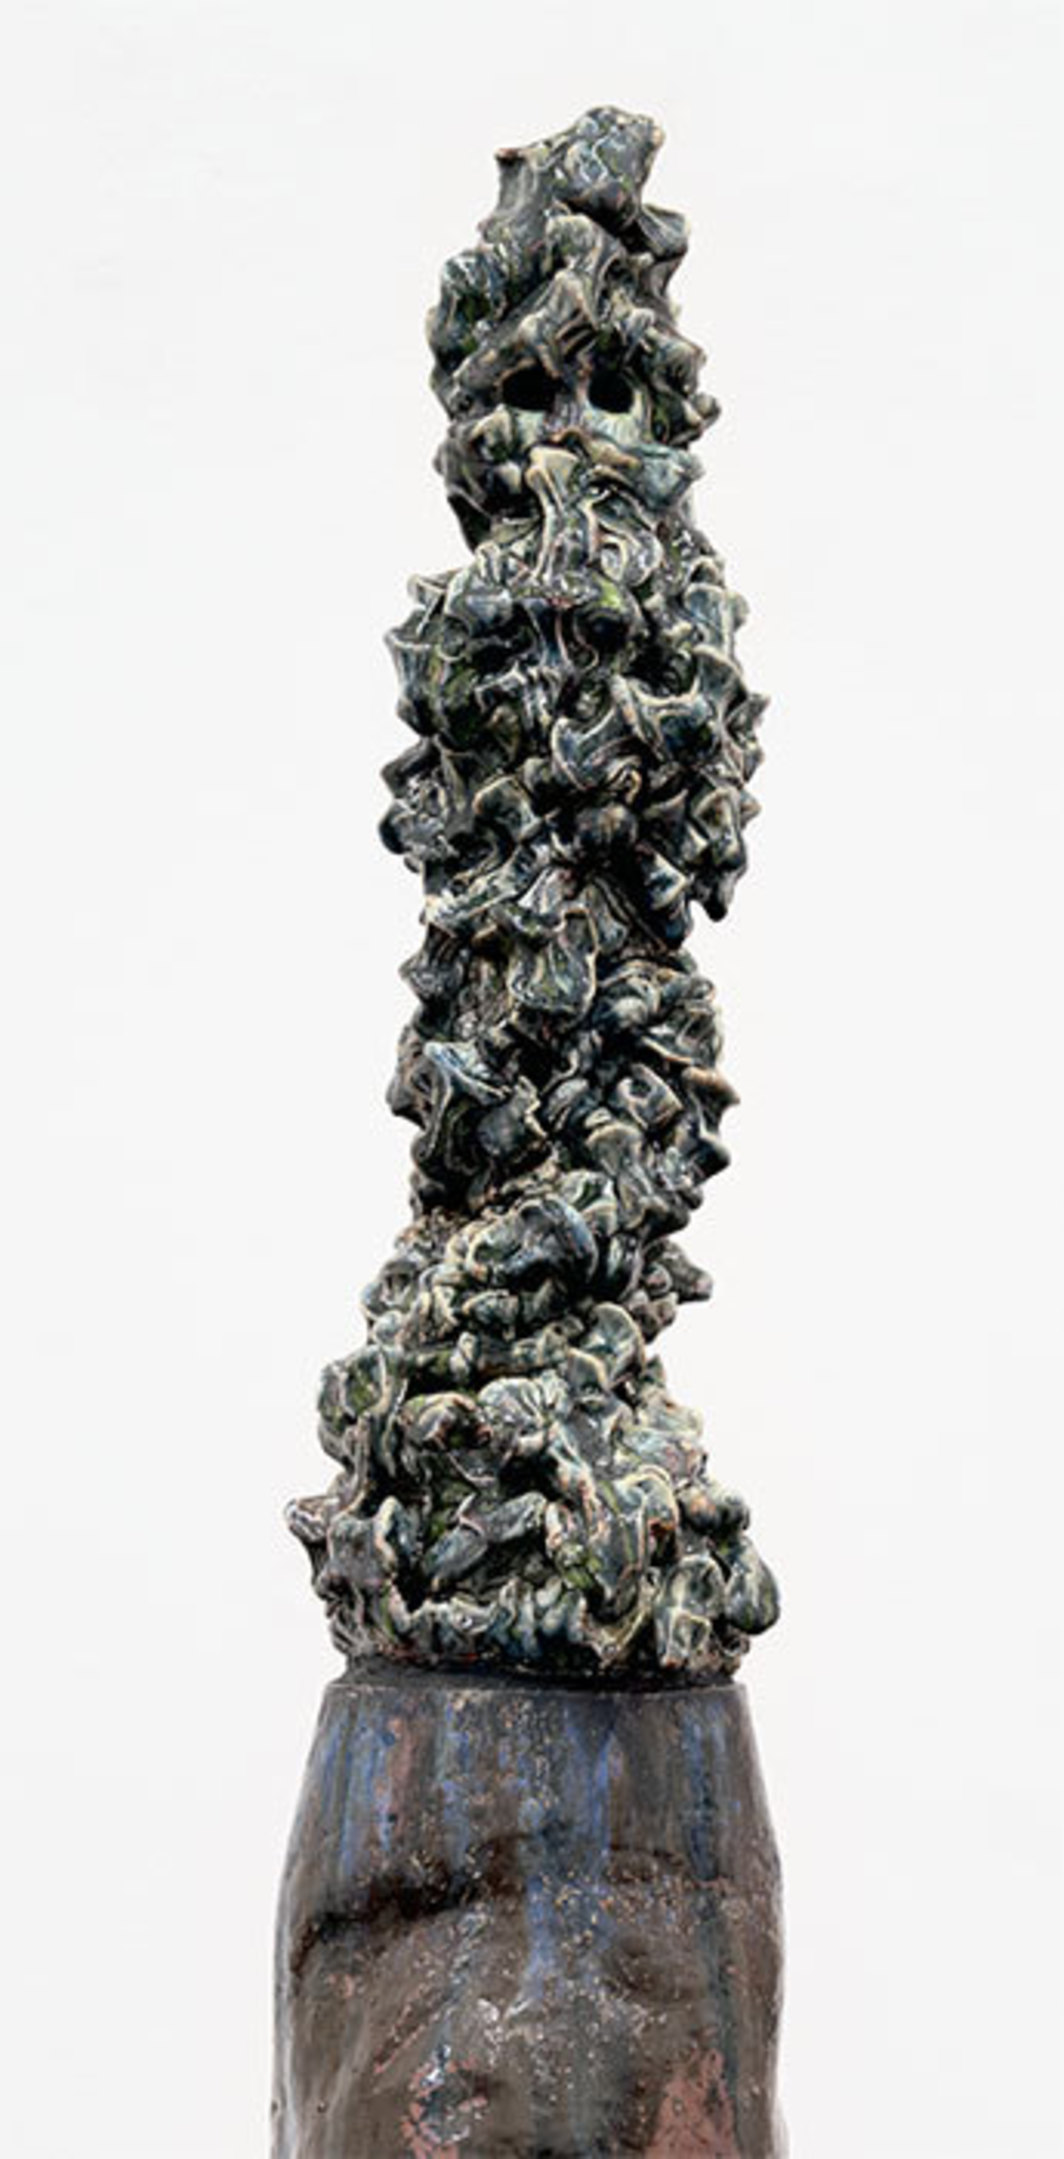 "Cameron Jamie, Untitled (detail), 2013, glazed stoneware, 61 3/4 × 12 1/4 × 12 1/4""."